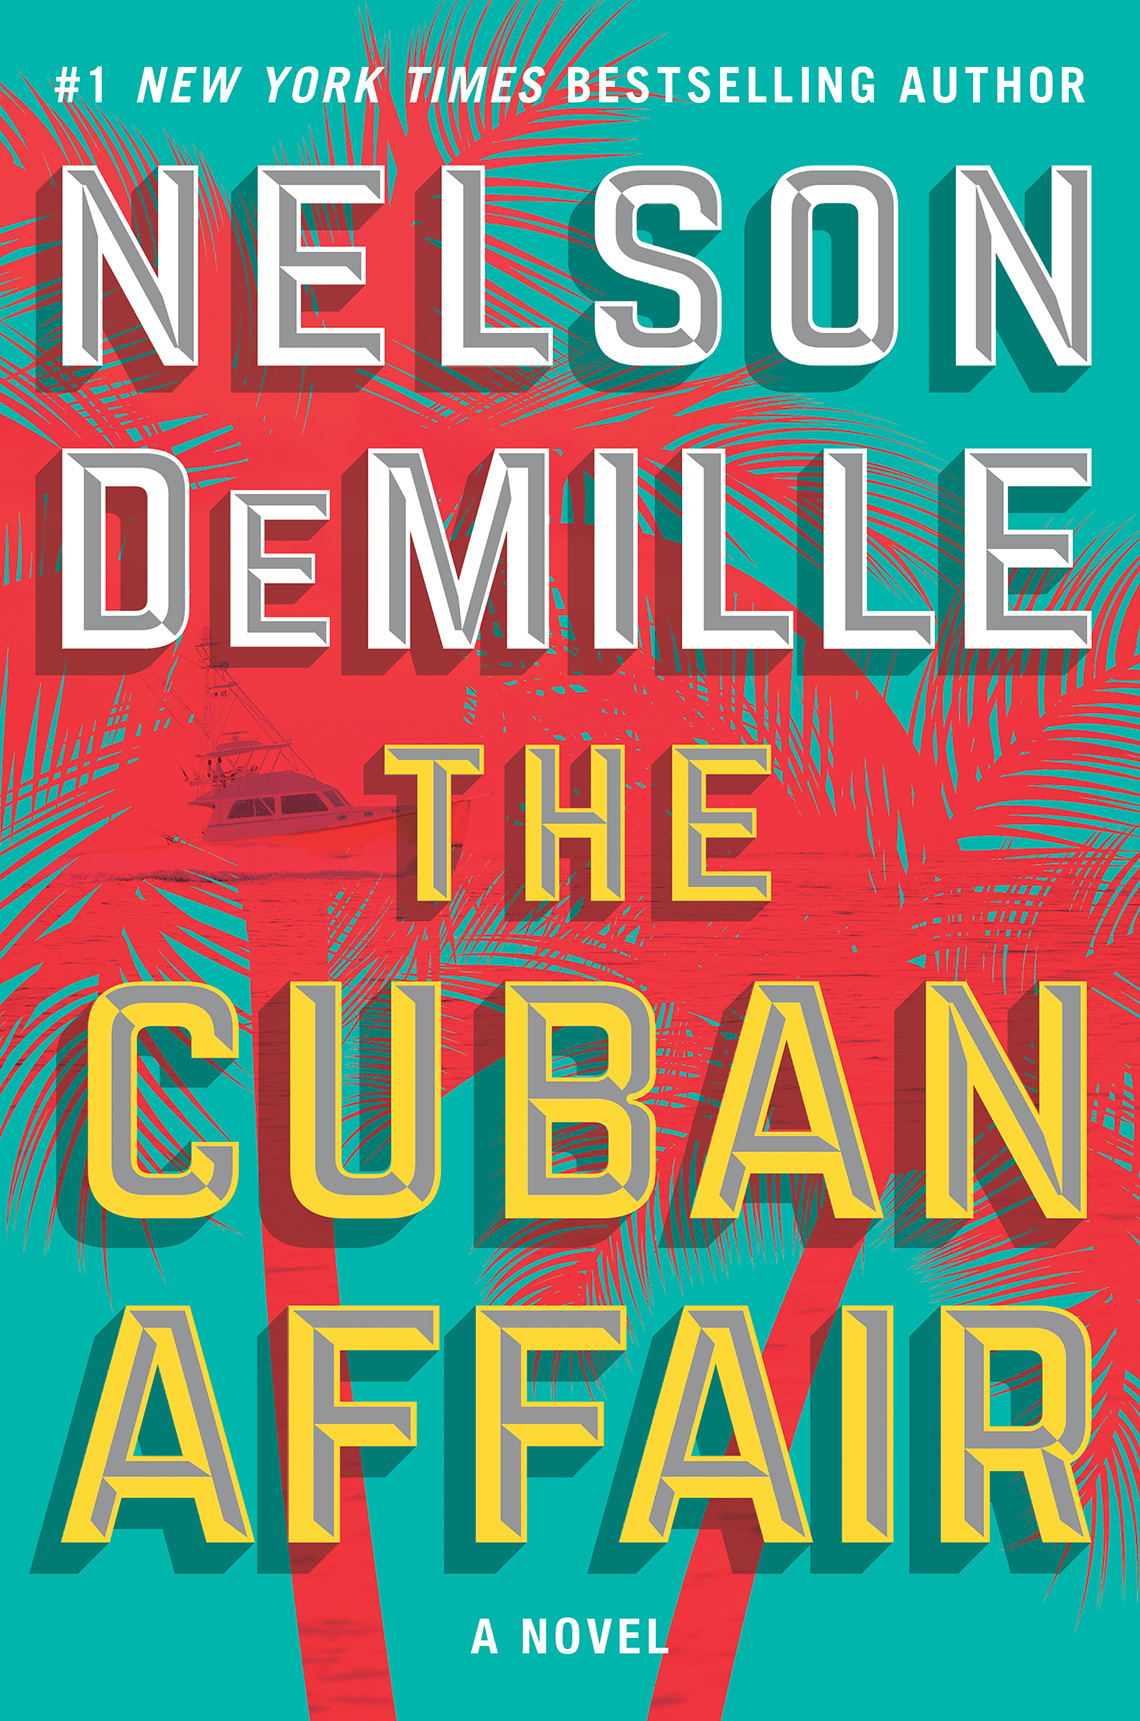 'The Cuban Affair' by Nelson DeMille